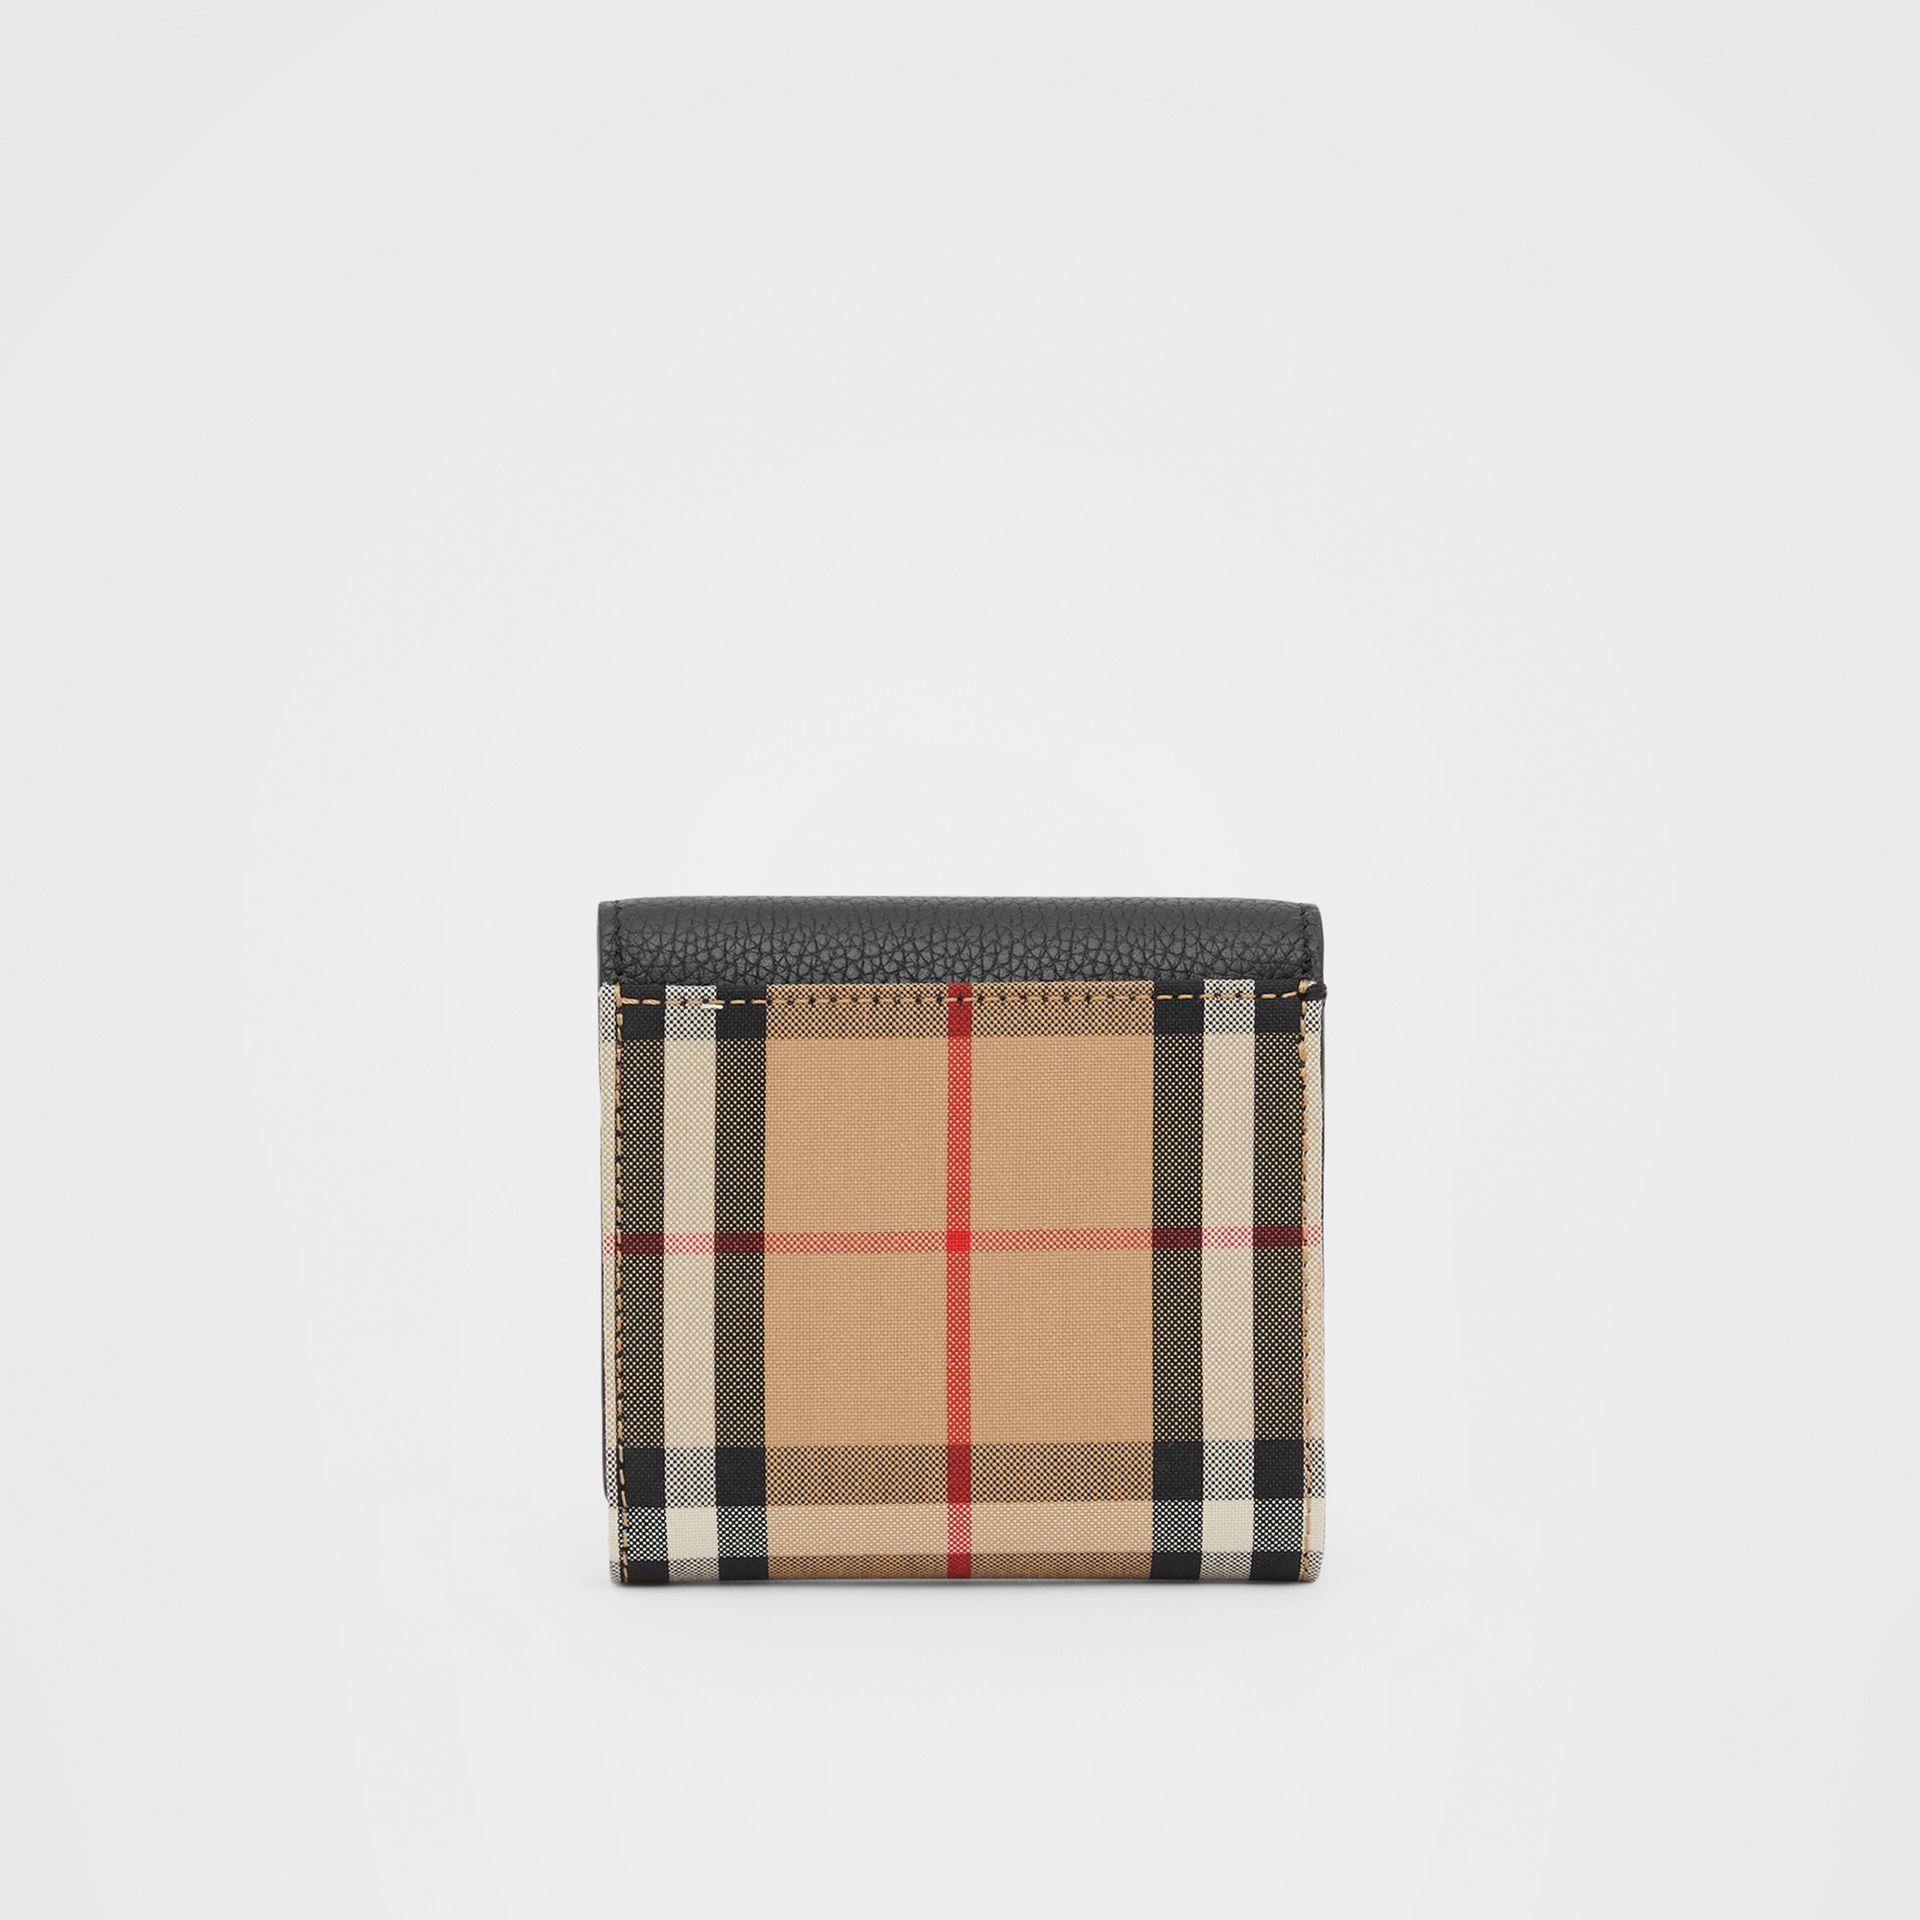 Vintage Check and Grainy Leather Folding Wallet in Black - Women | Burberry Hong Kong S.A.R - gallery image 4